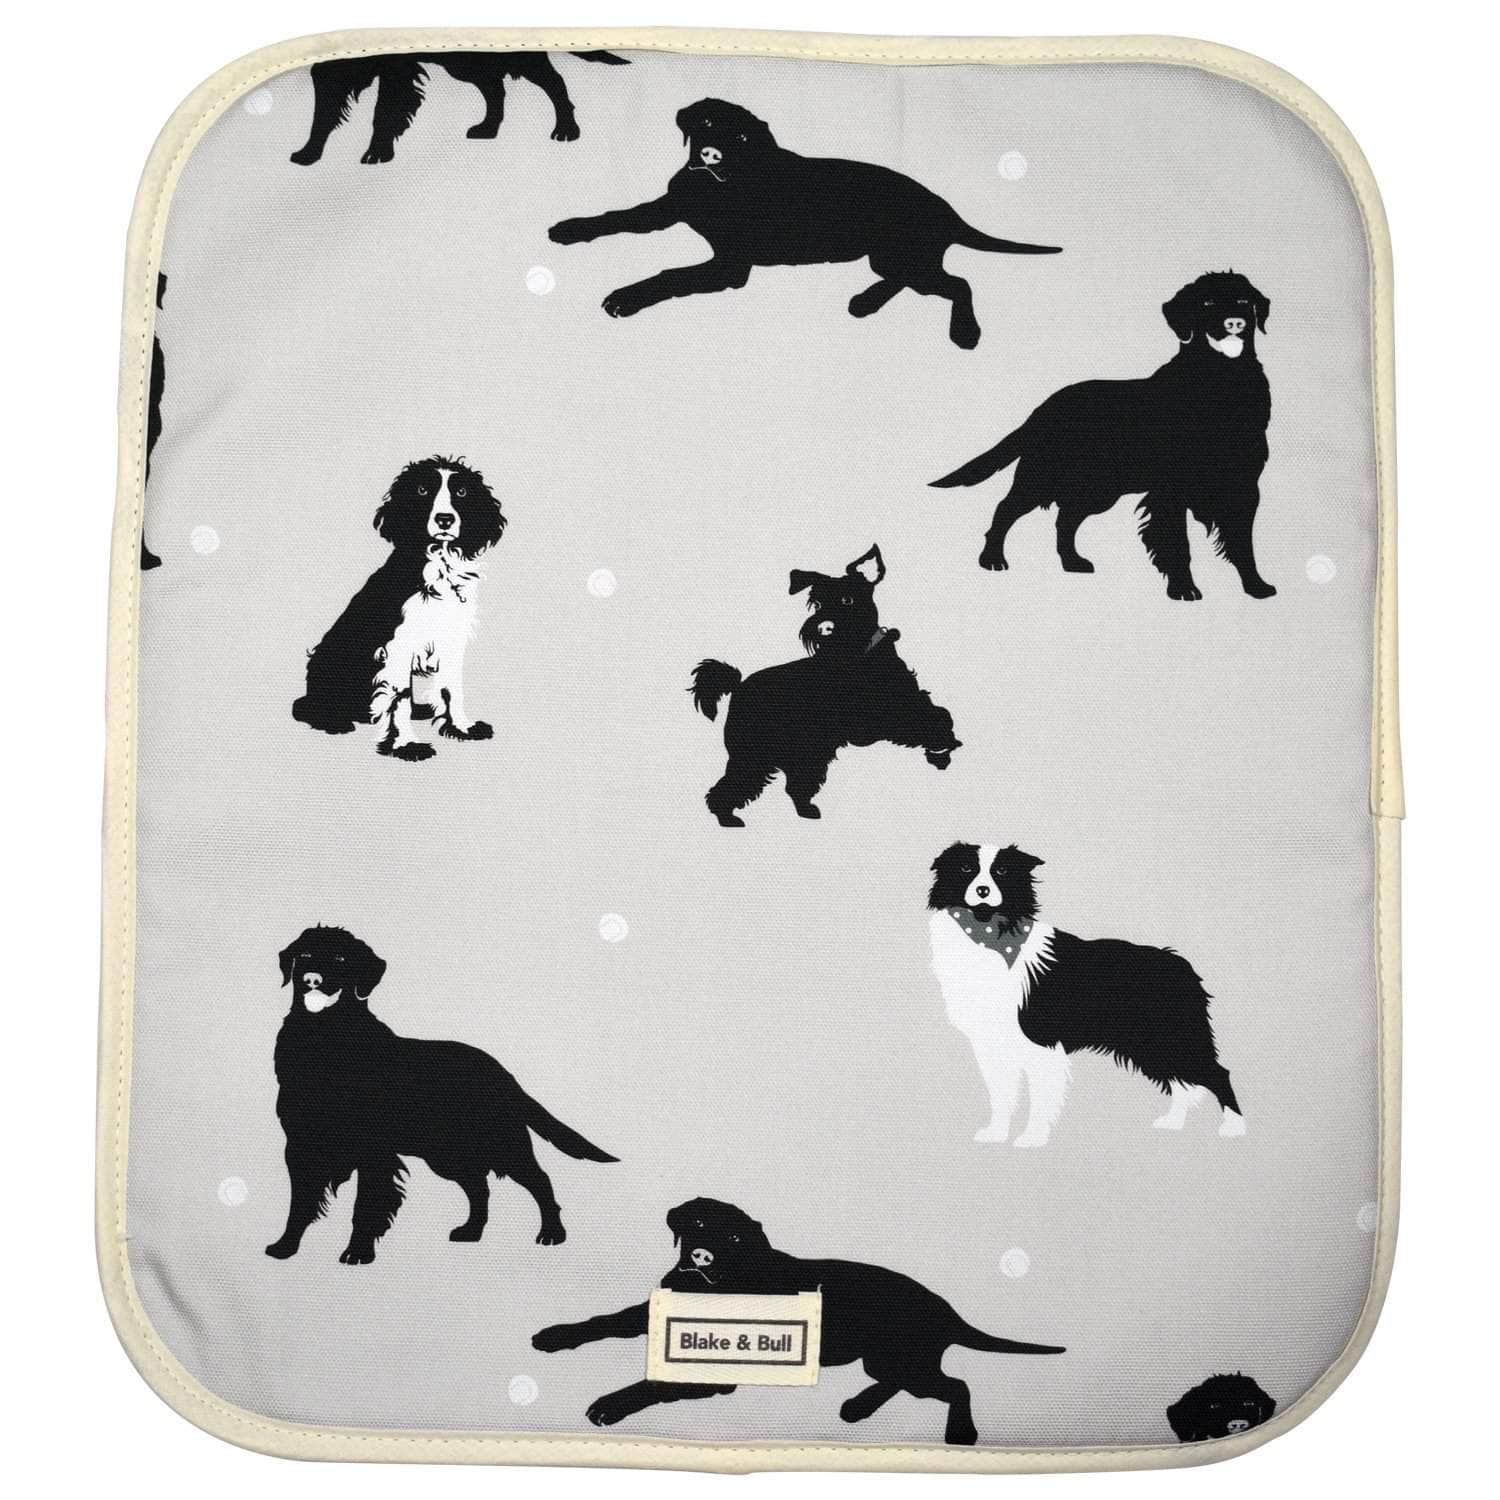 Warming plate cover for use with Aga range cookers - 'Good dog!'